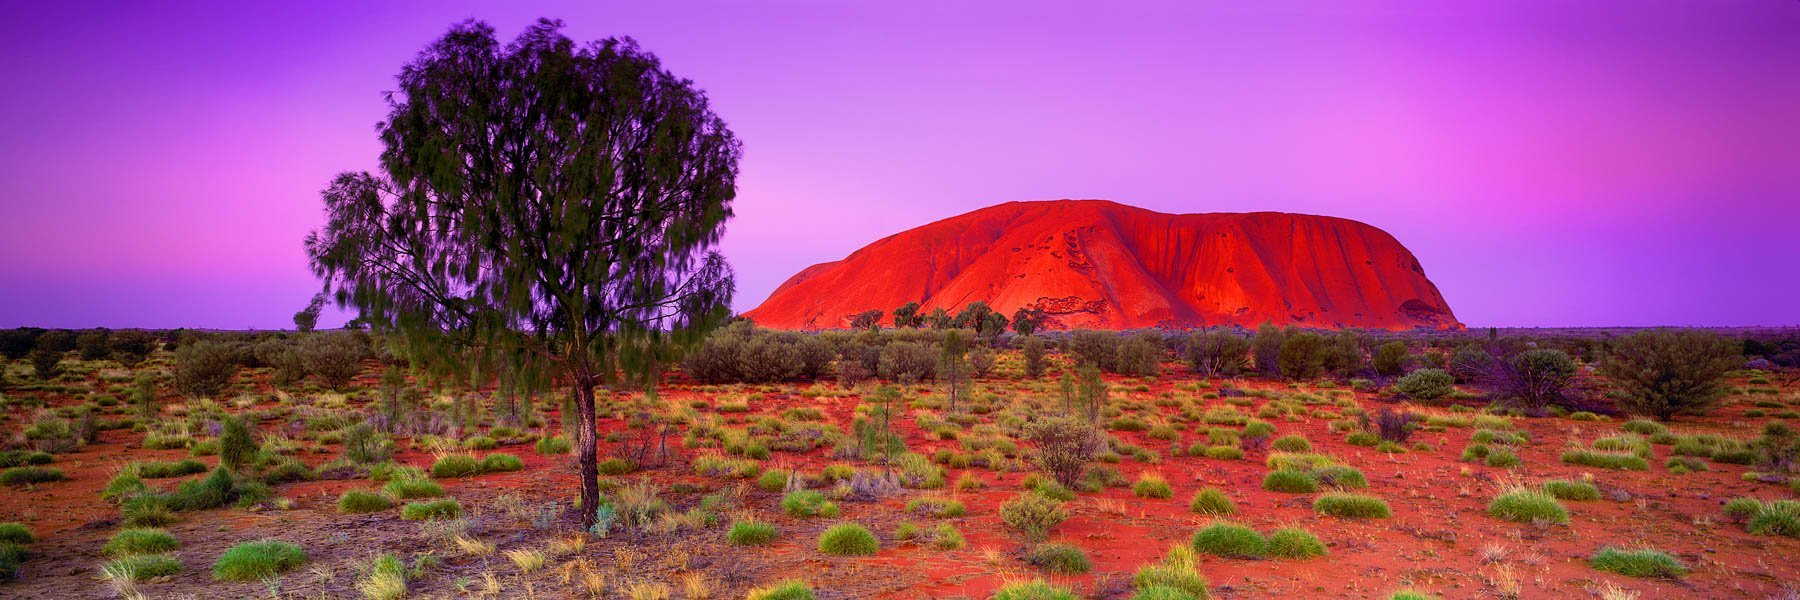 Uluru glowing deep red in the pastel light of sunset, NT, Australia.